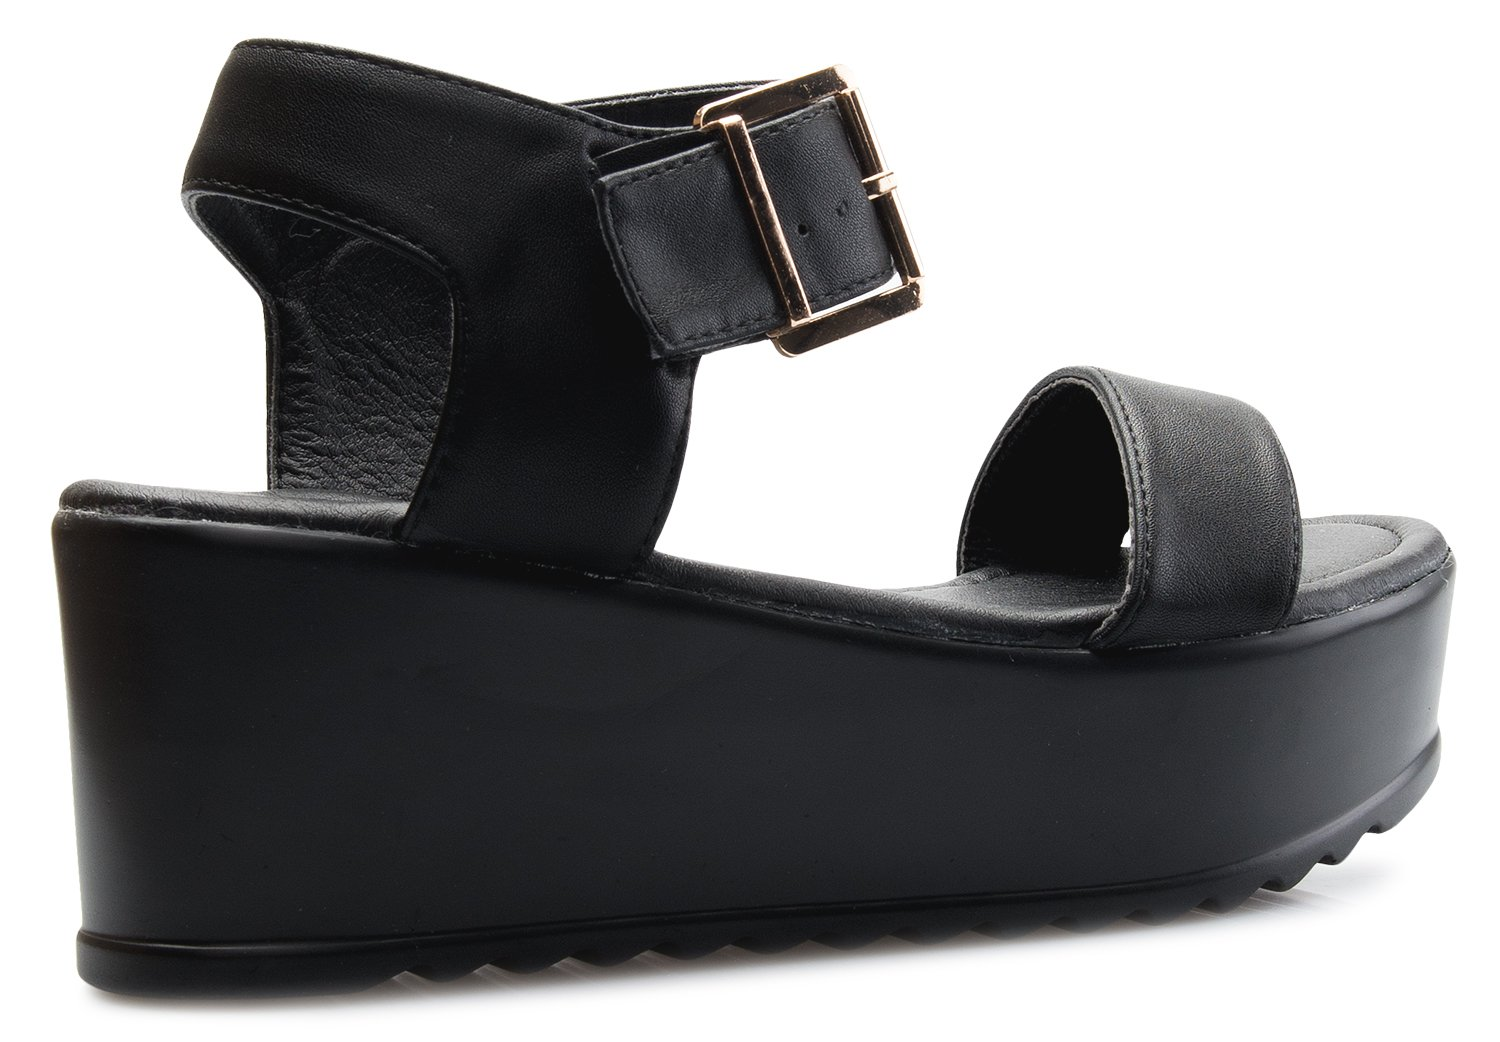 OLIVIA K Women's Platform Buckle Sandal - Open Peep Toe Fashion Chunky Ankle Strap Shoe,Black,8 B(M) US by OLIVIA K (Image #3)